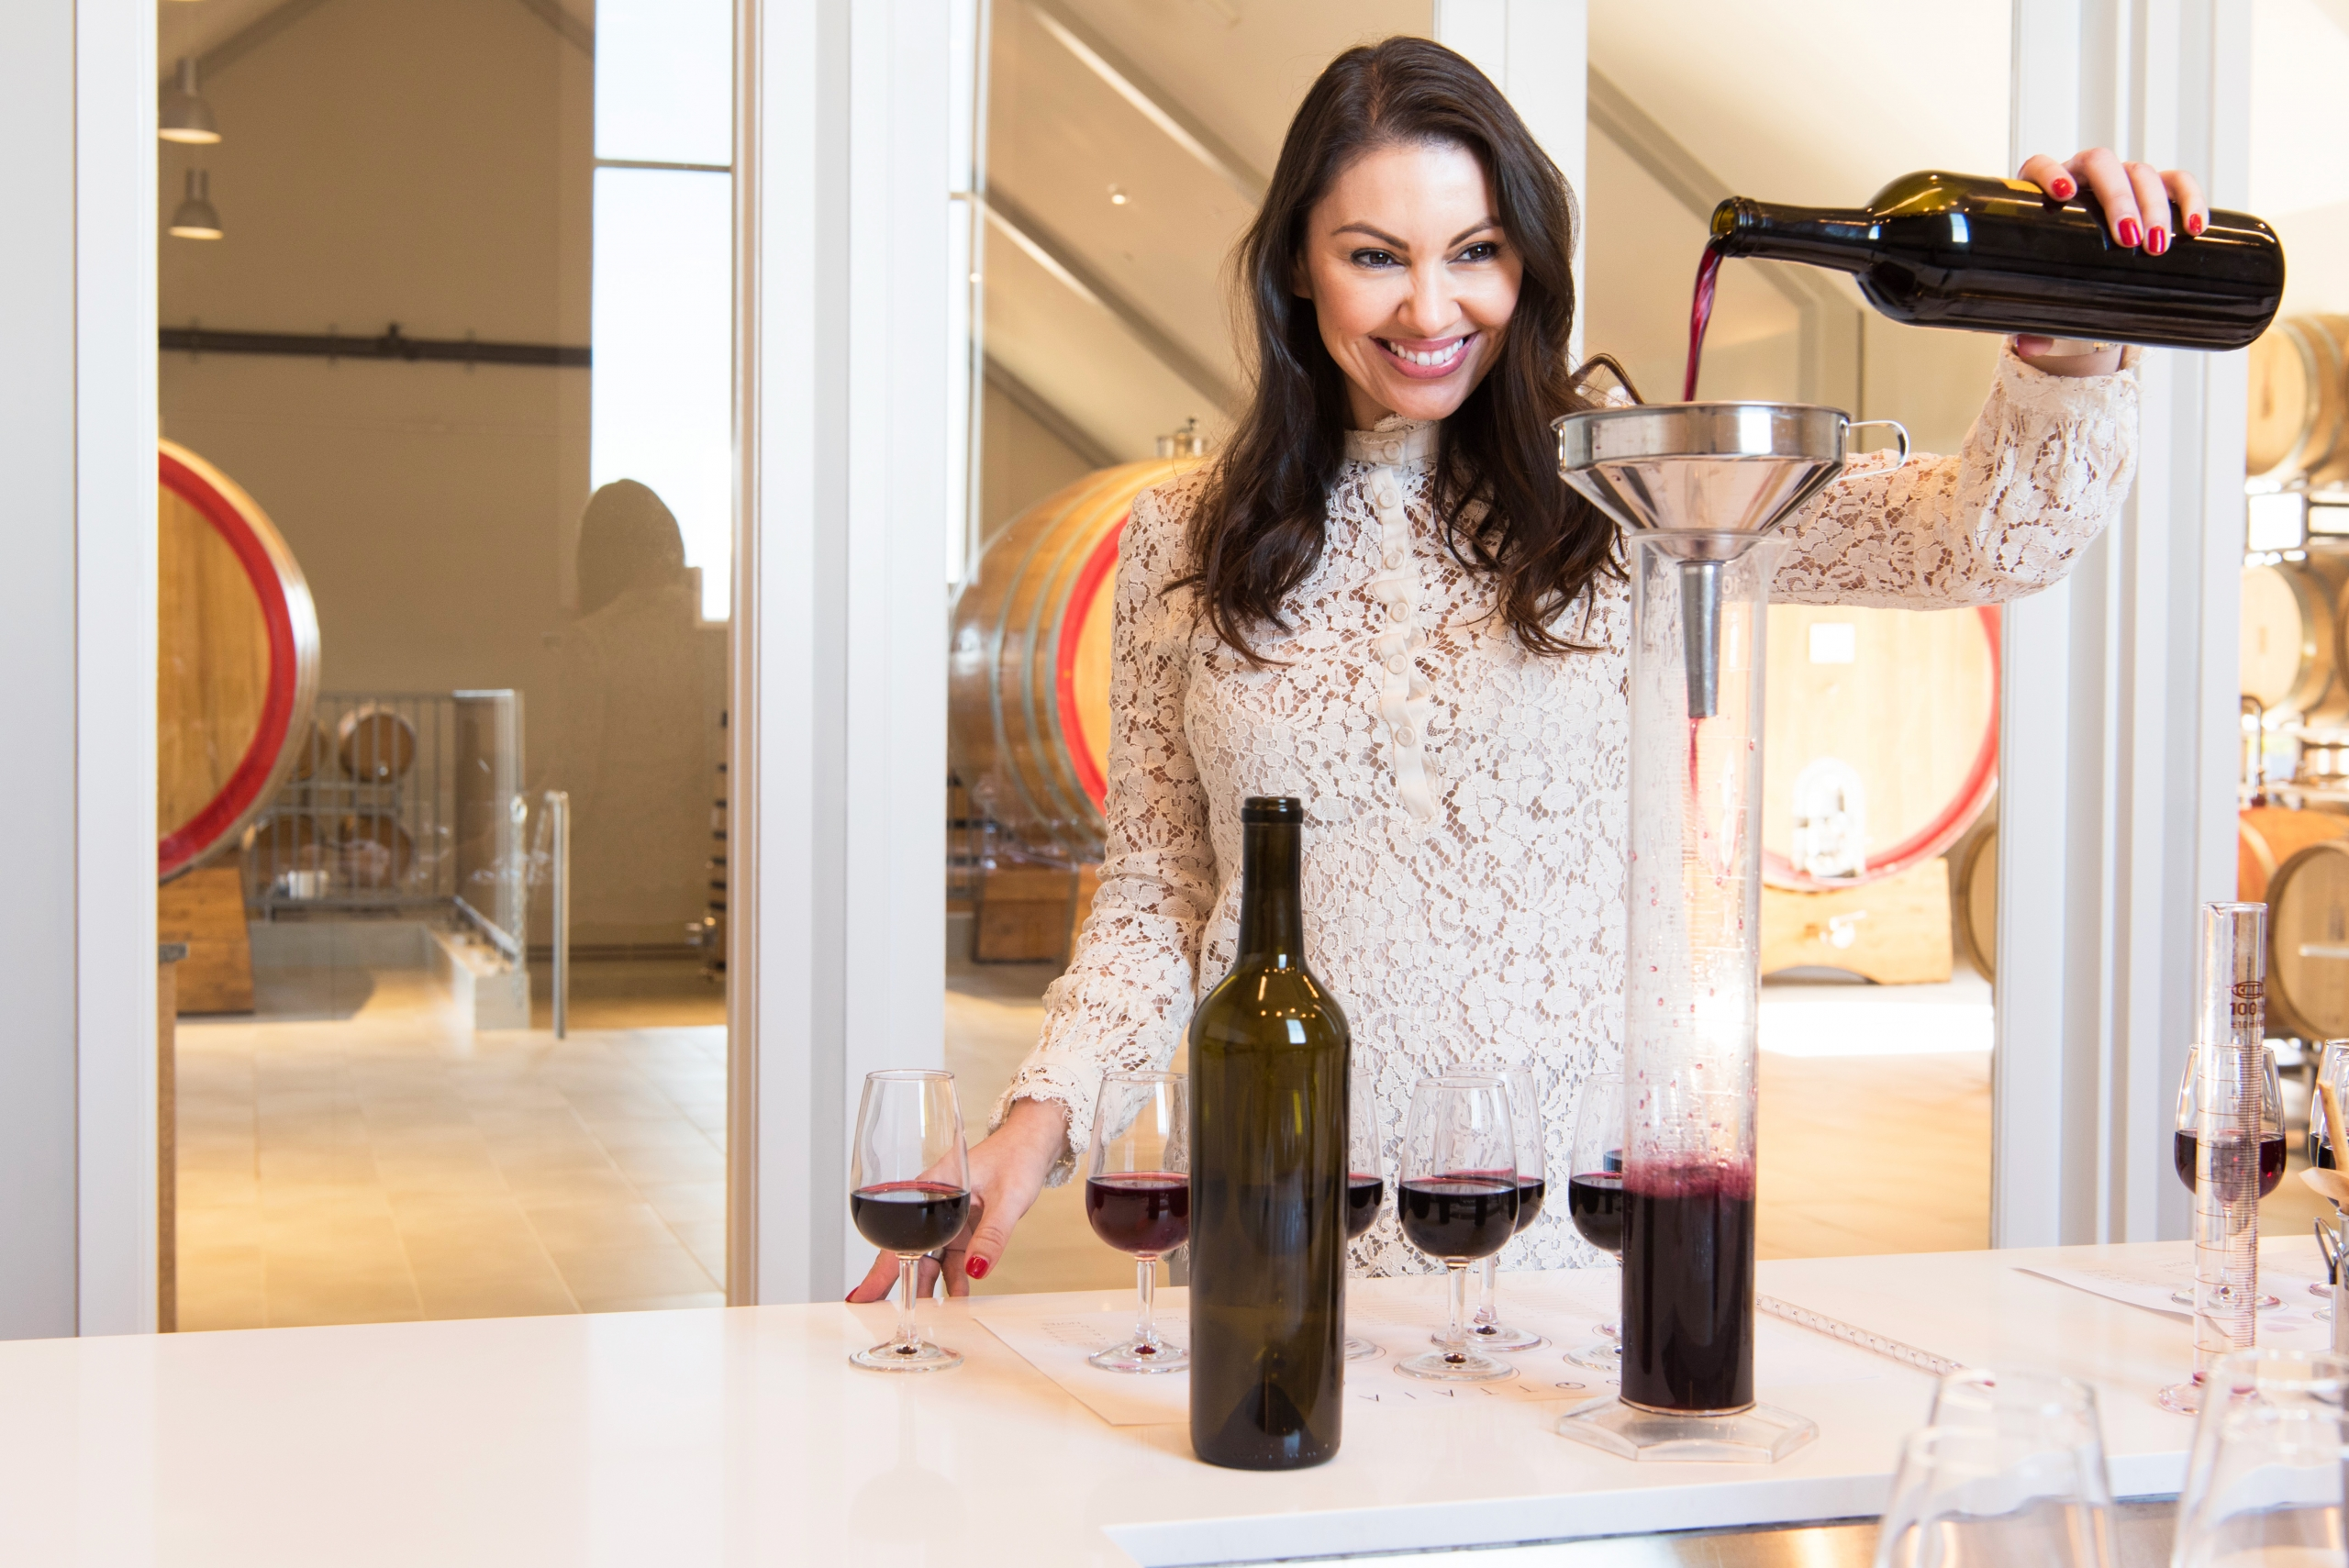 Make Your Own Wine Blend Straight From the Barrel at Bottaia Winery in Temecula